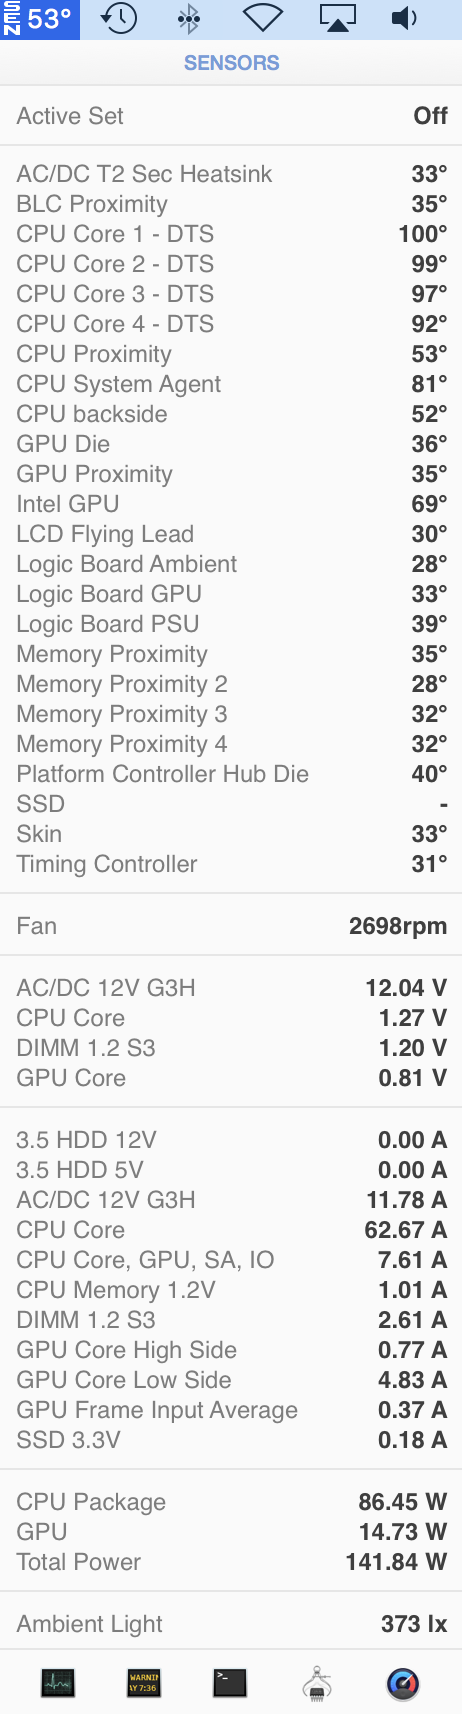 iMac 5k with ridiculous high temperatures - Apple Community